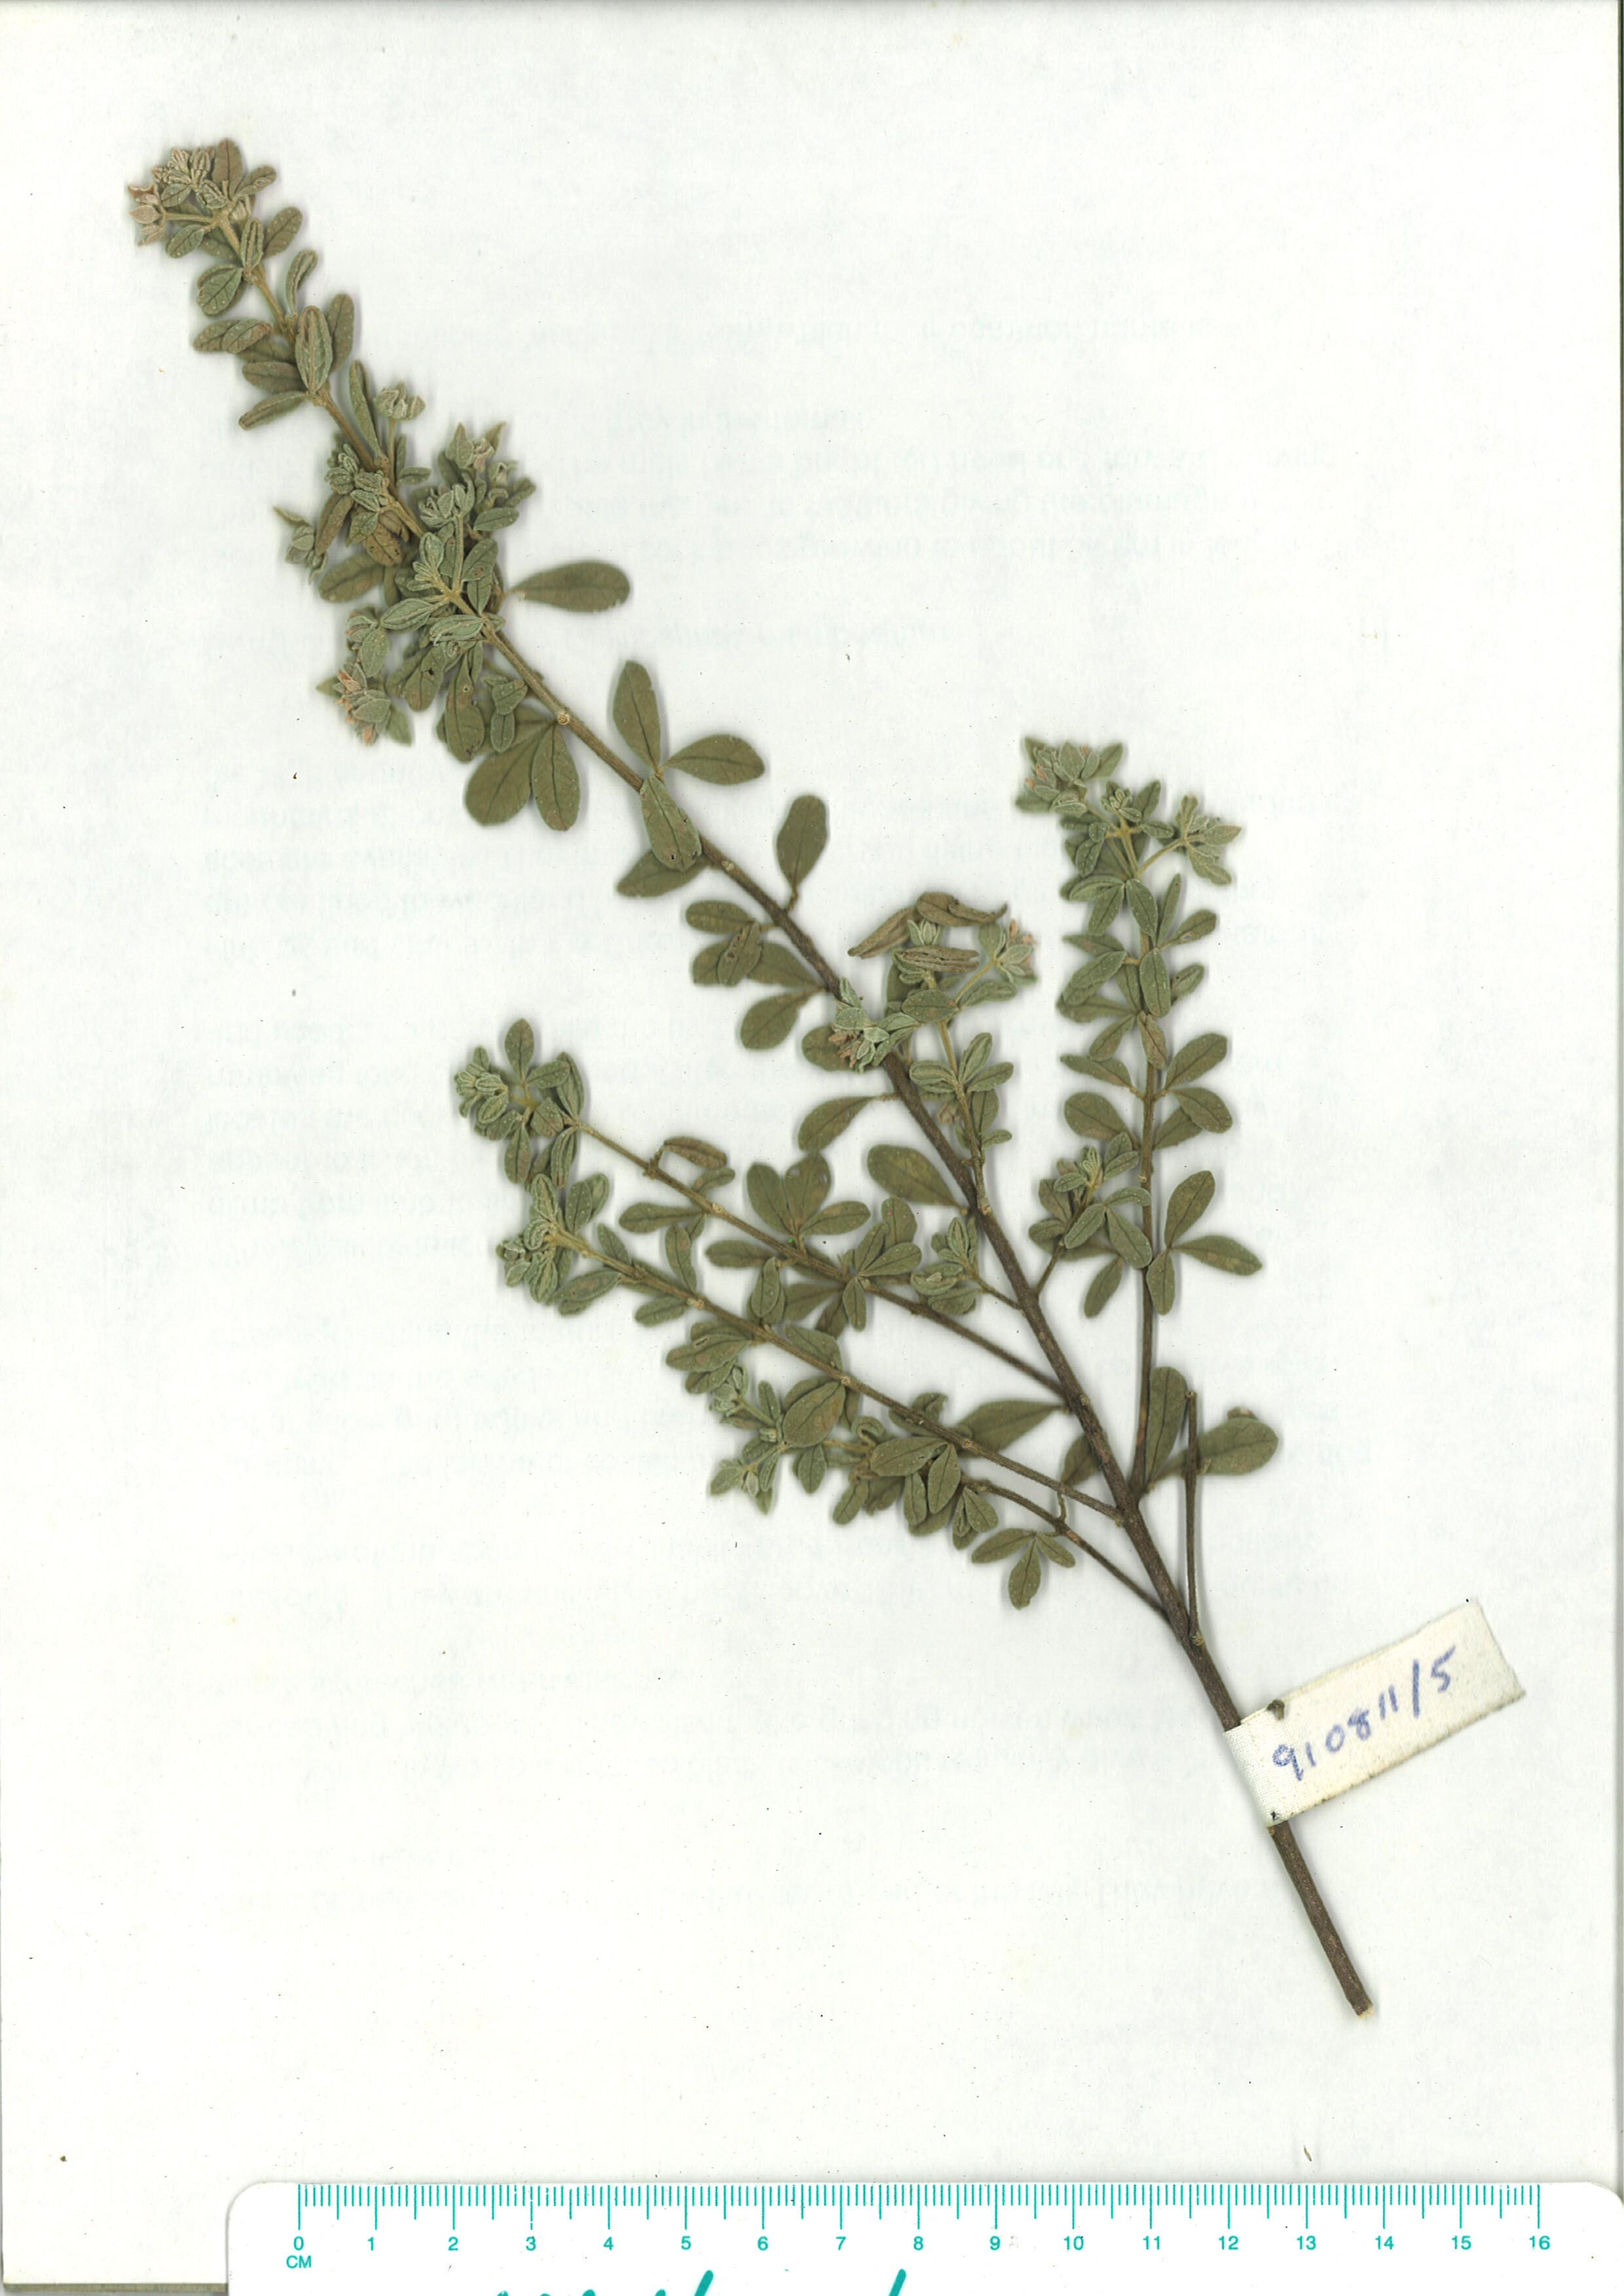 Scanned herbarium image of Zieria littoralis